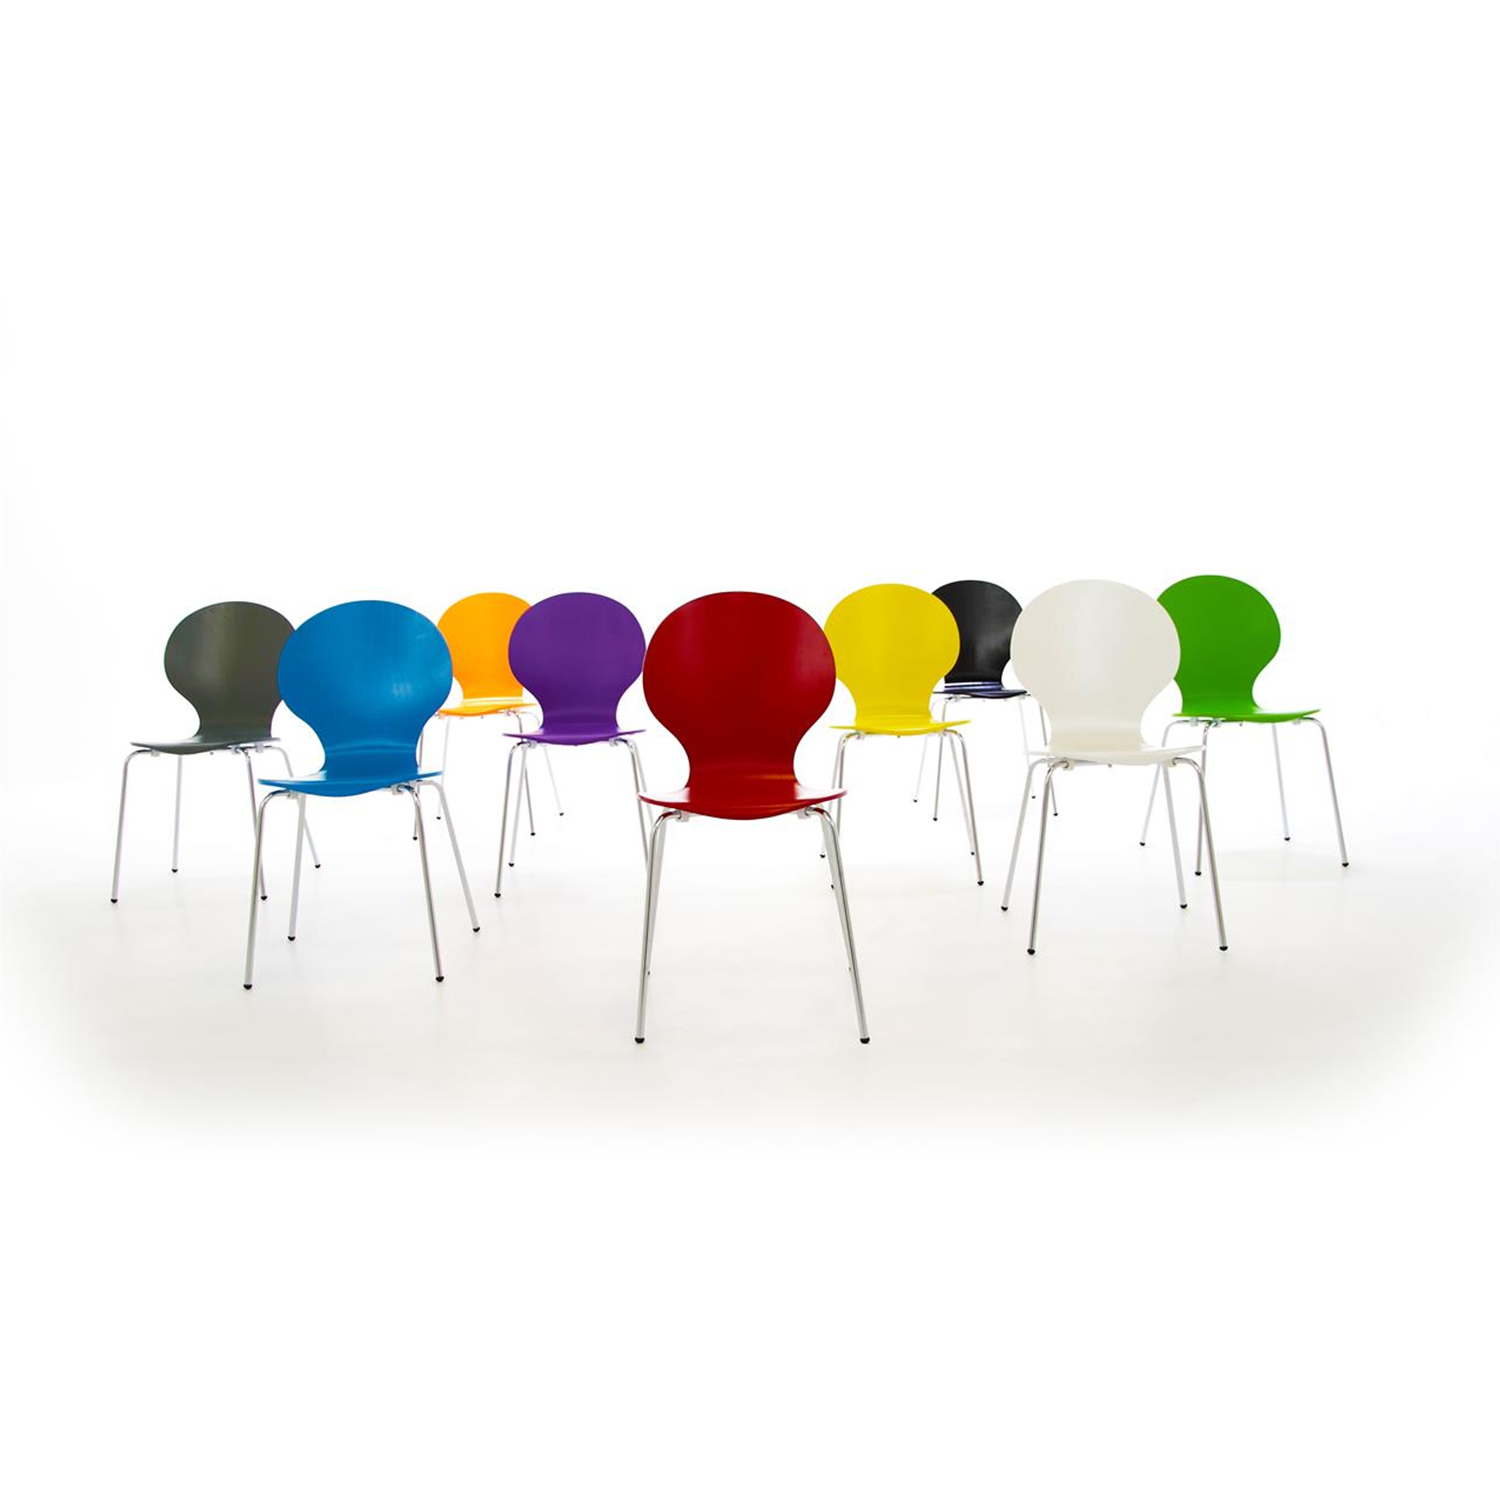 Hugo Dining Chairs Set Of 1, 2, 4, 6 or 8 - Various Colours (Colour: Maple, Number of Chairs: 6)